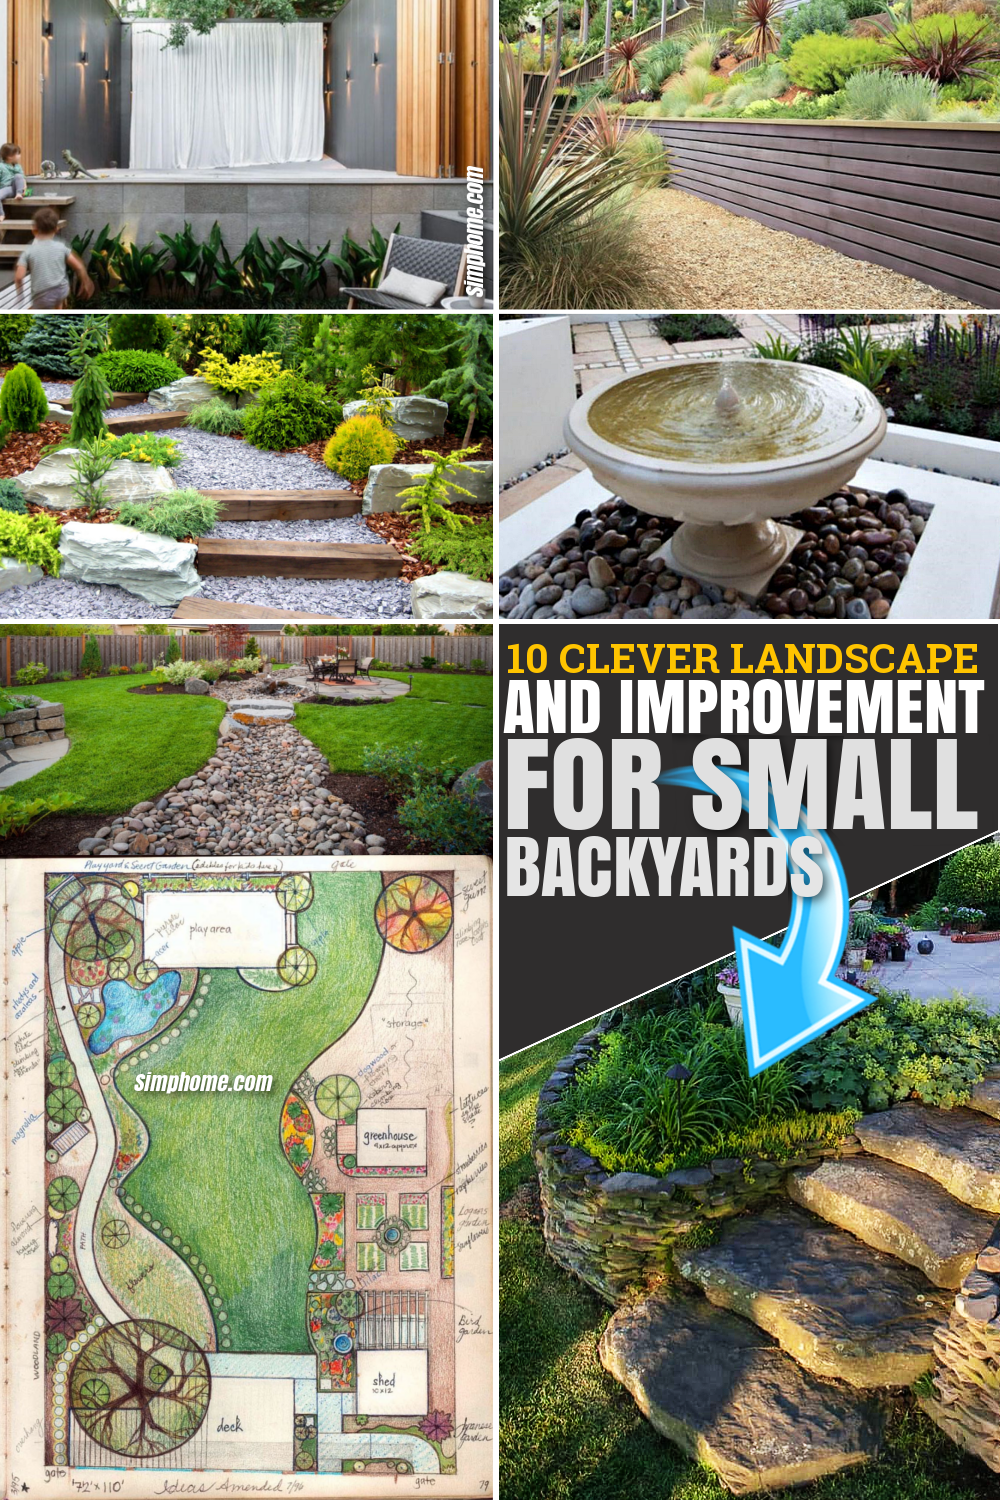 10 Clever Landscape design plans and improvement for a small backyard Via SIMPHOME.COM Pinterest Featured Image